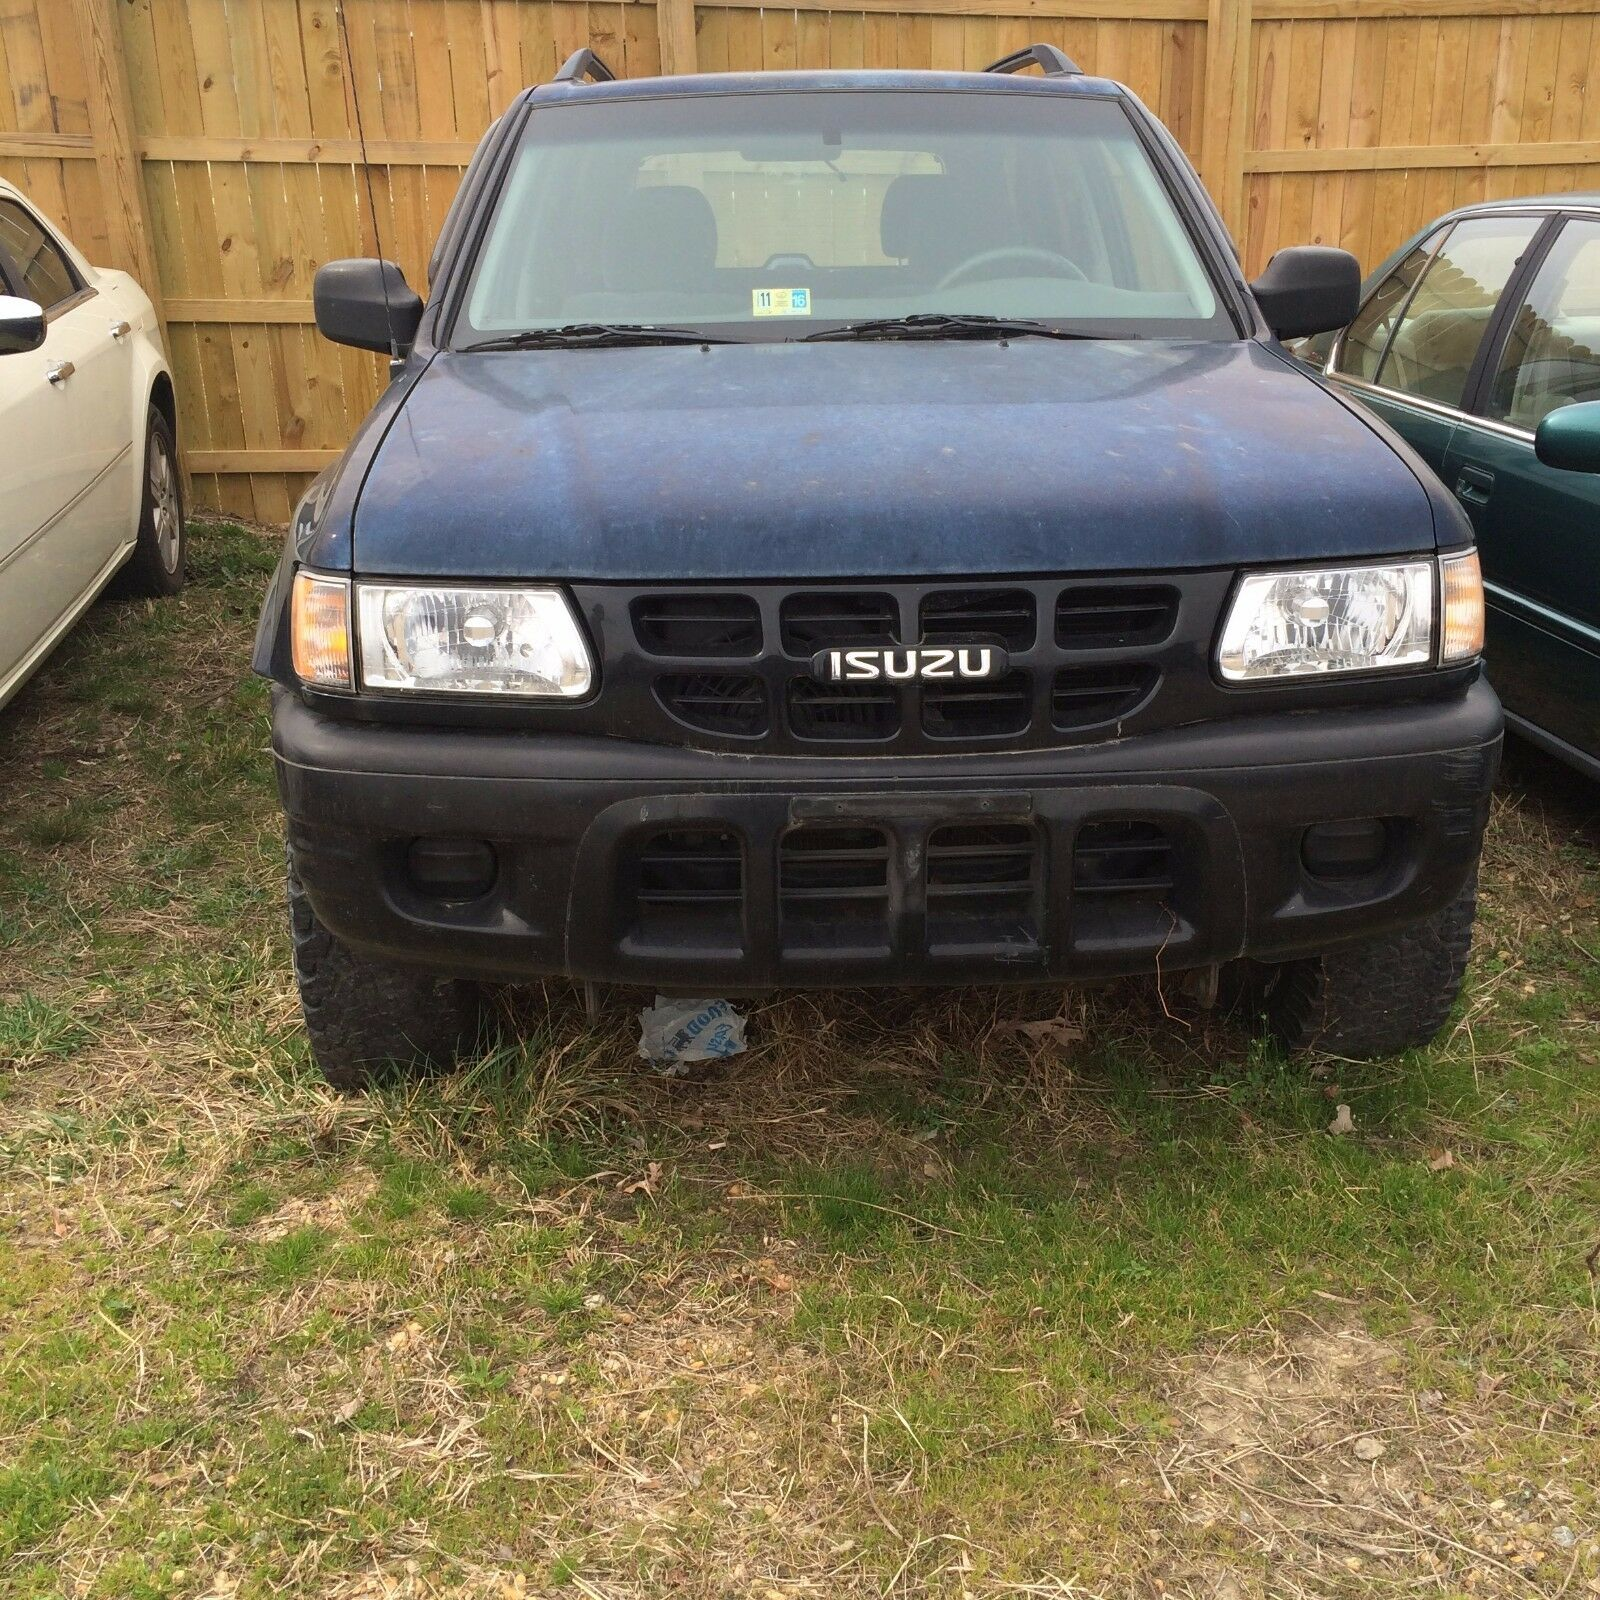 2000 Isuzu Rodeo 1 Of 5Only 1 Available ...